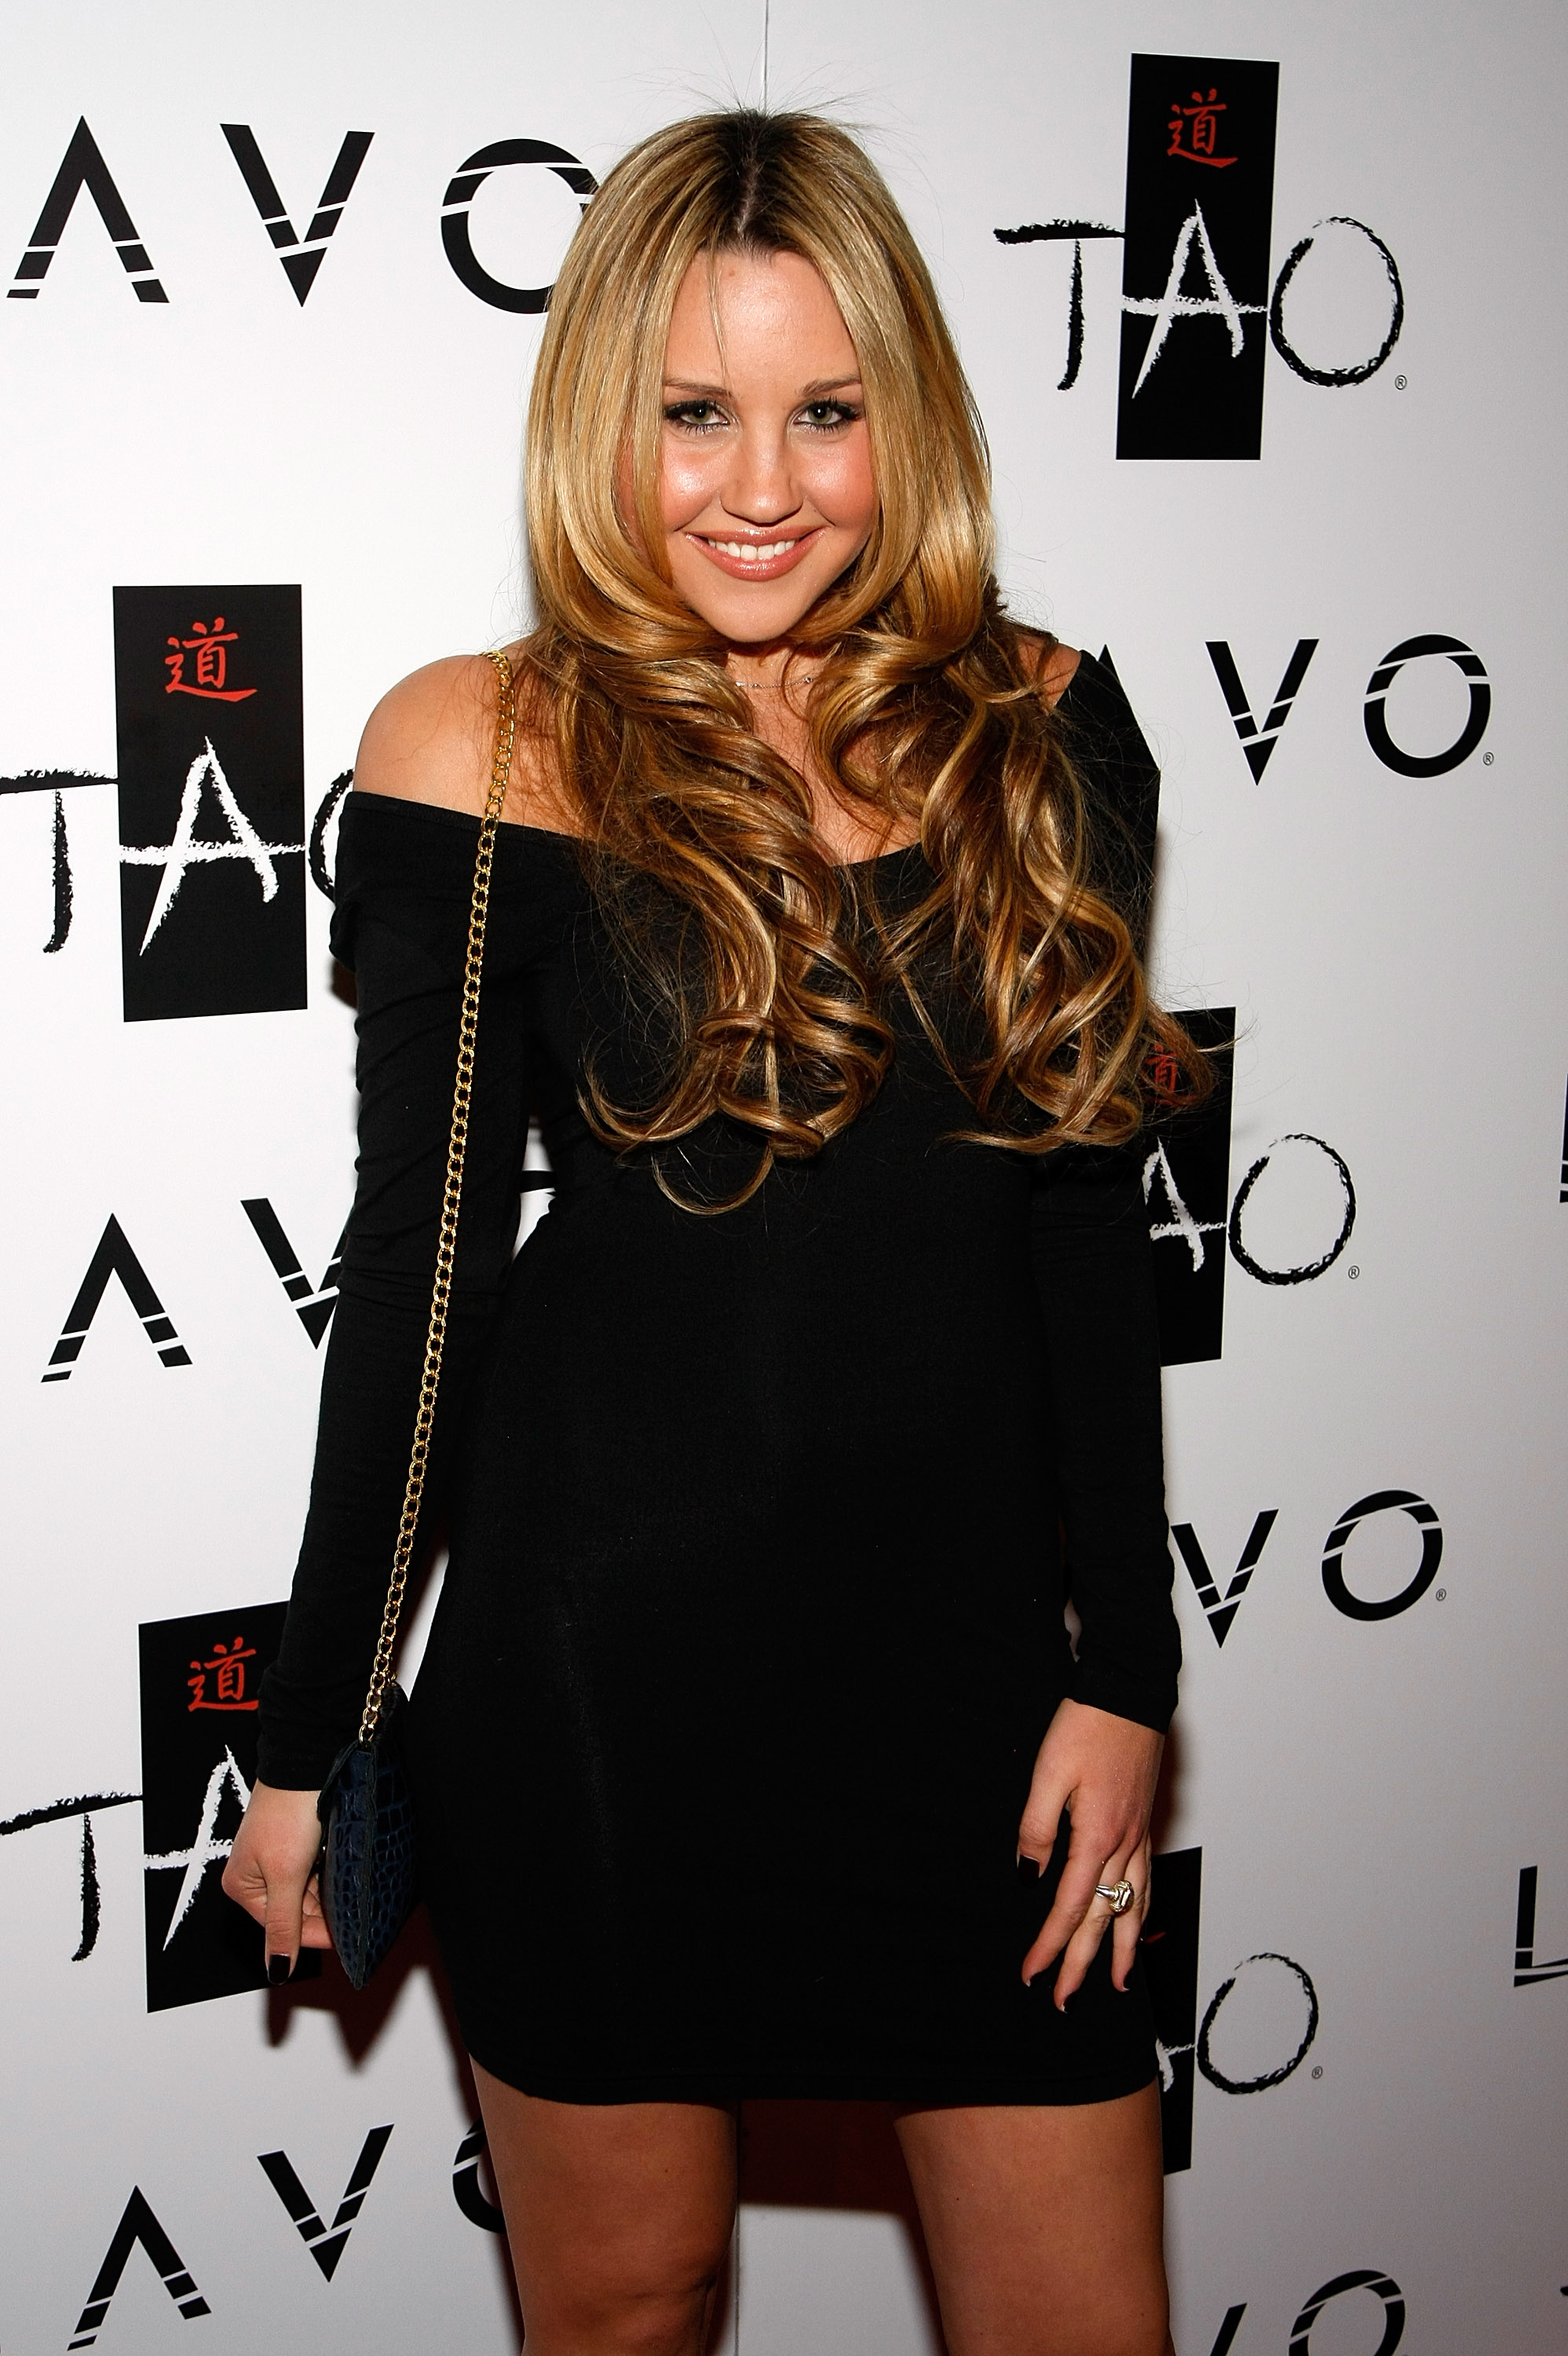 Actress Amanda Bynes arrives at the Tao Nightclub at the Venetian Resort Hotel Casino during the club's four-year anniversary party October 3, 2009 in Las Vegas, Nevada. (Photo by Ethan Miller/Getty Images)